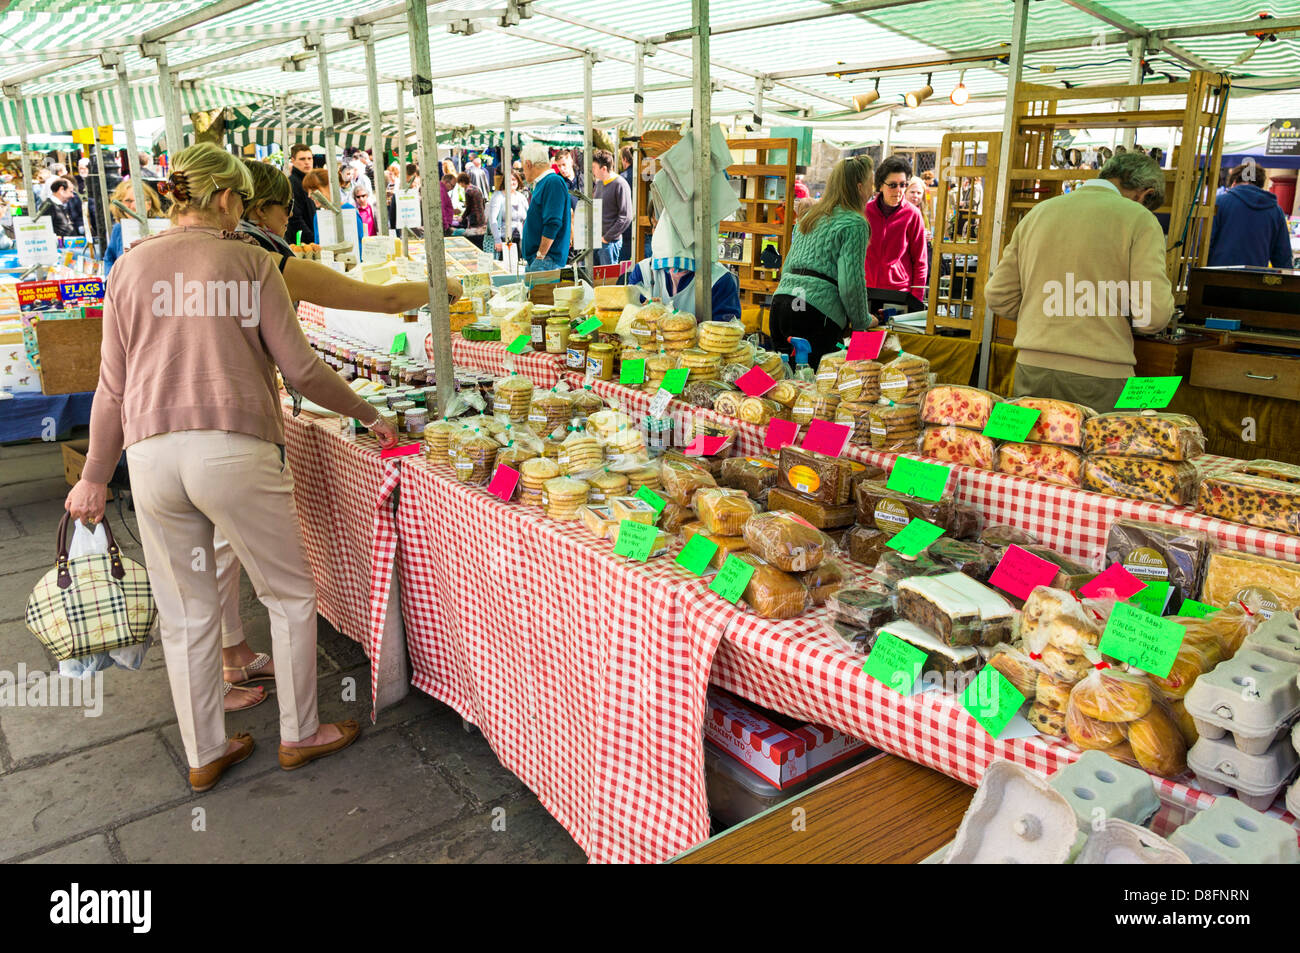 People at a market stall at Wells Farmers Market, Somerset, England, UK - Stock Image